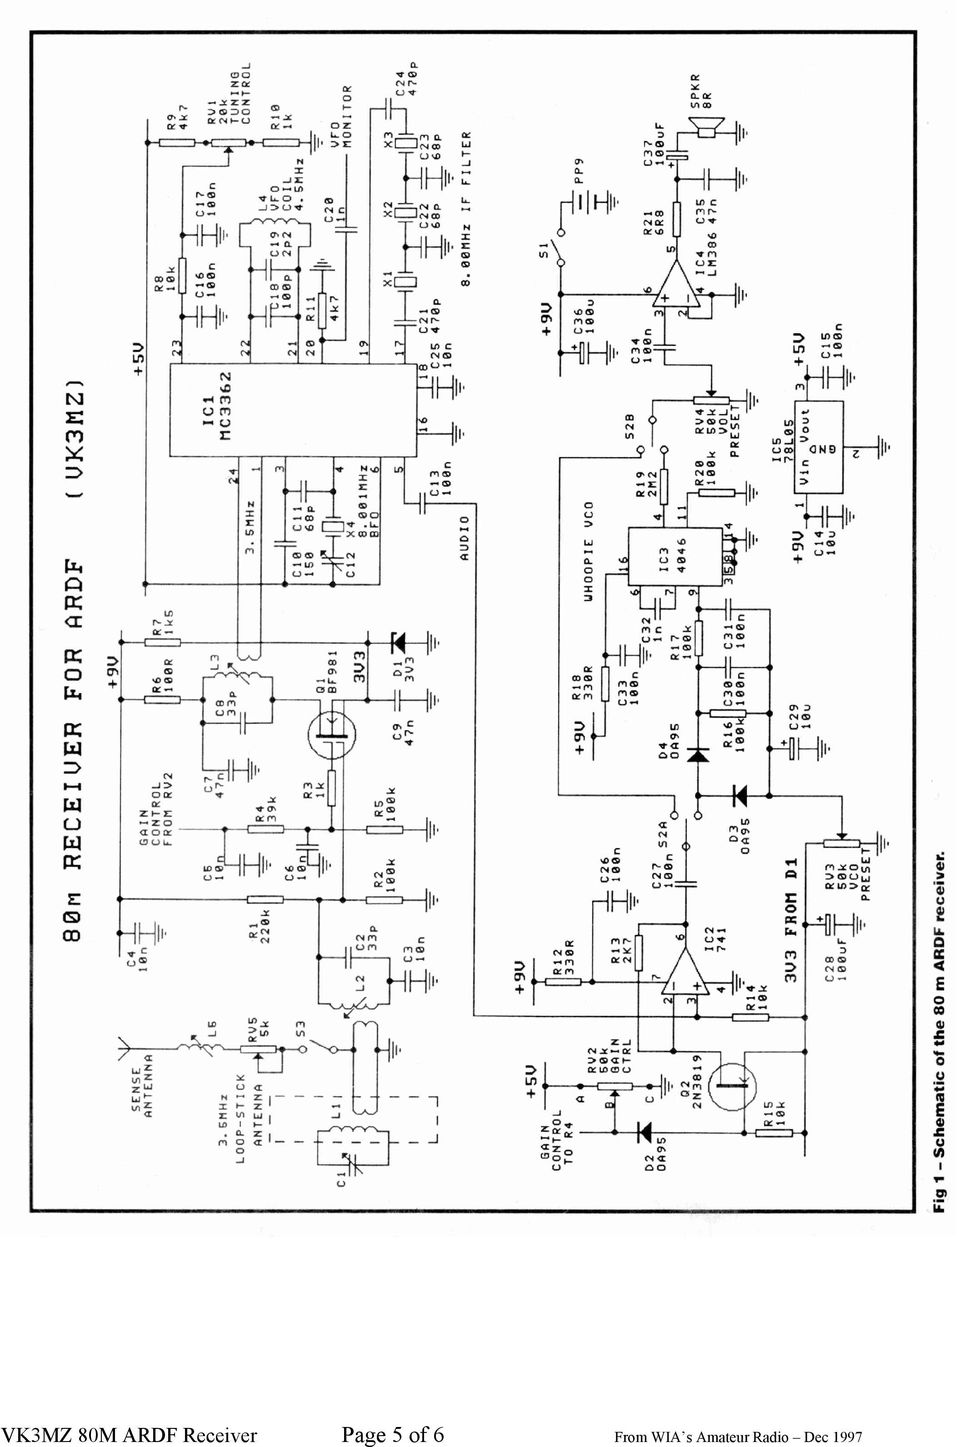 Vk3mz 80m Receiver For Ardf Pdf Circuit Diagram Ssb Transceiver 40m Of 6 From Wia S